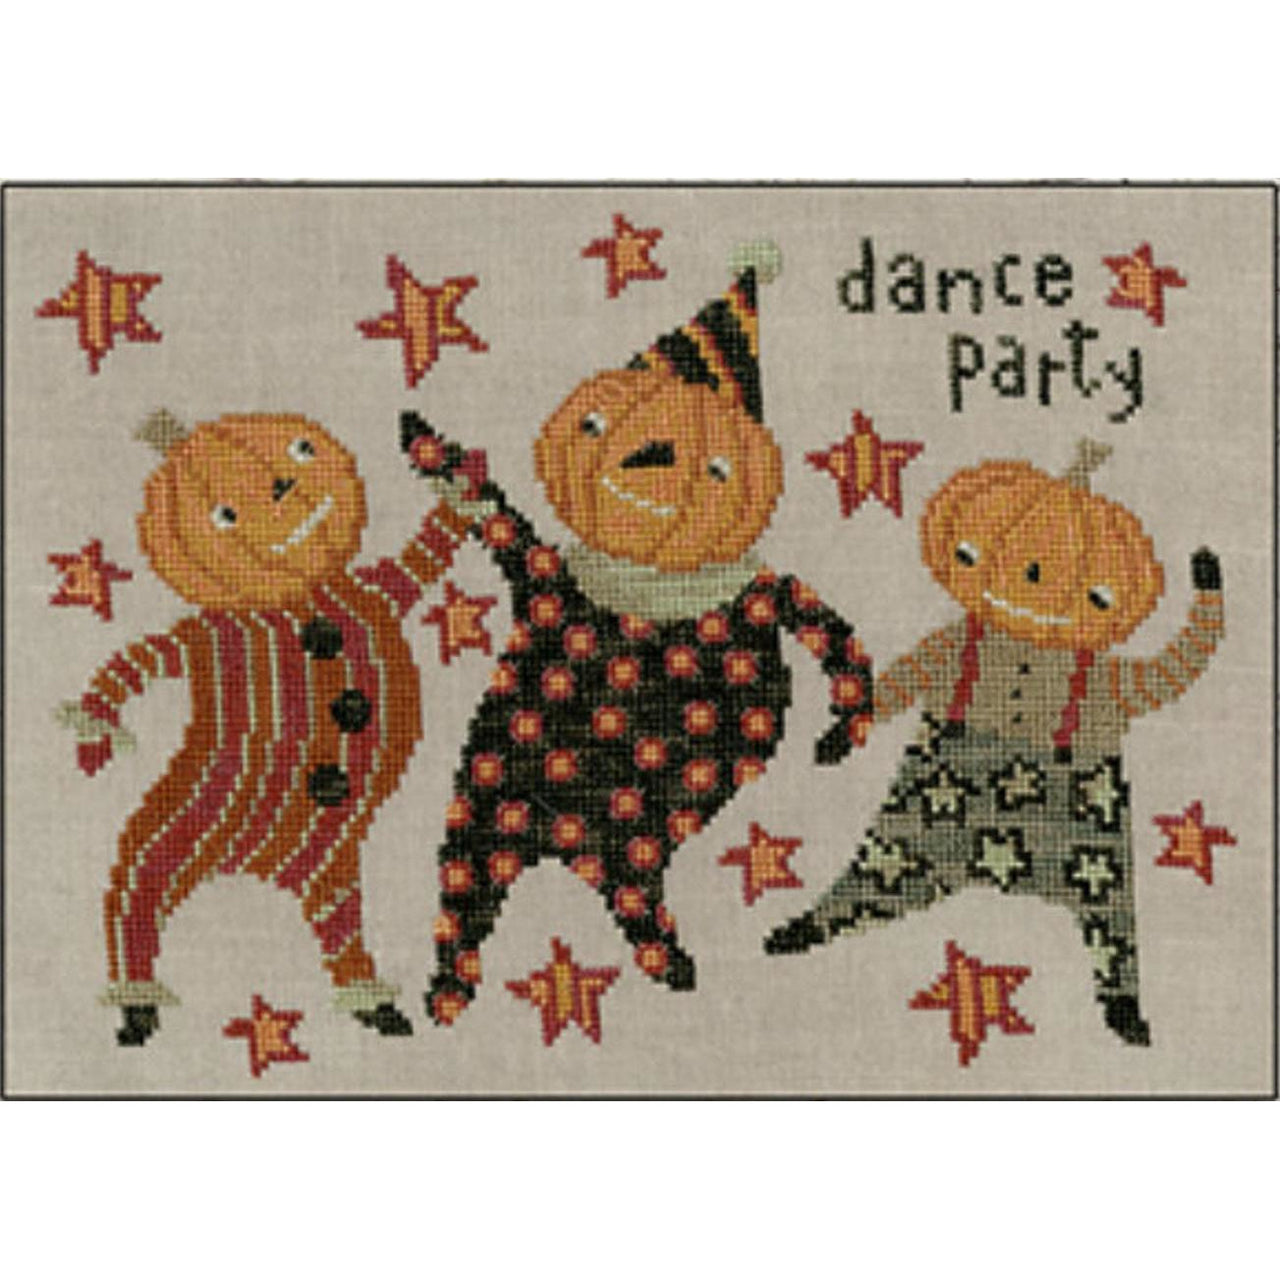 Dance Party Pattern